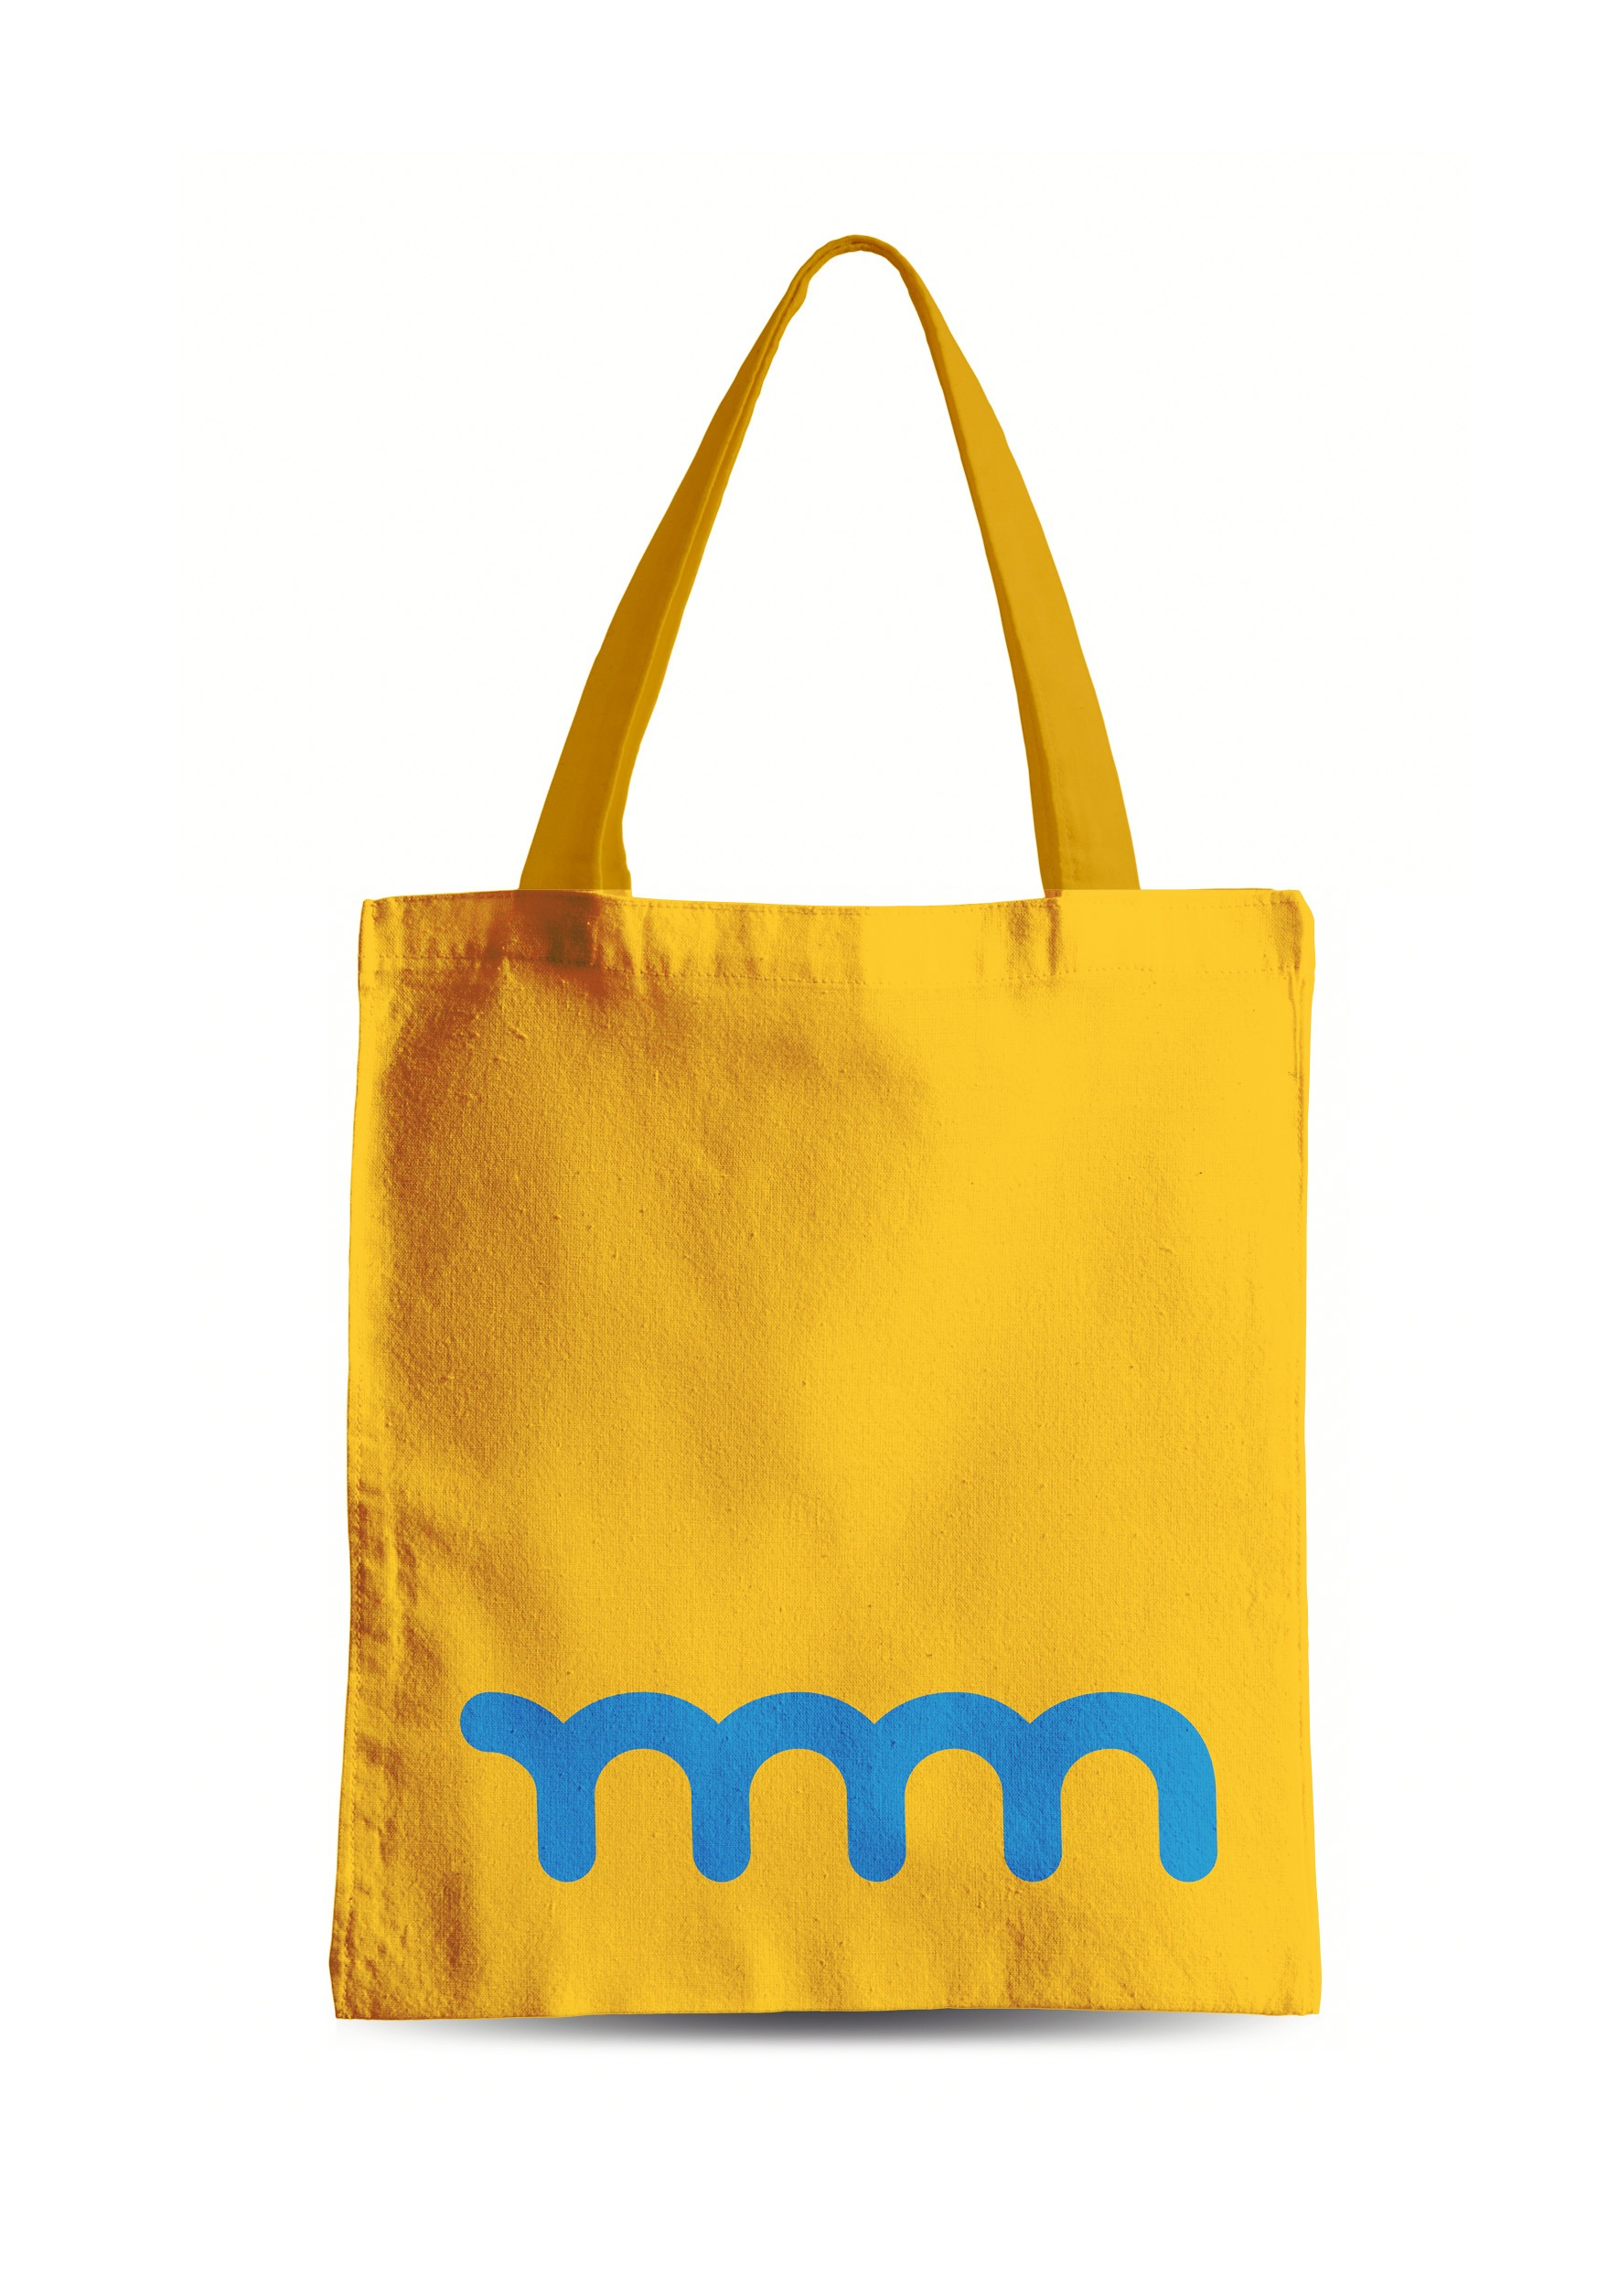 bag_mock_up_3